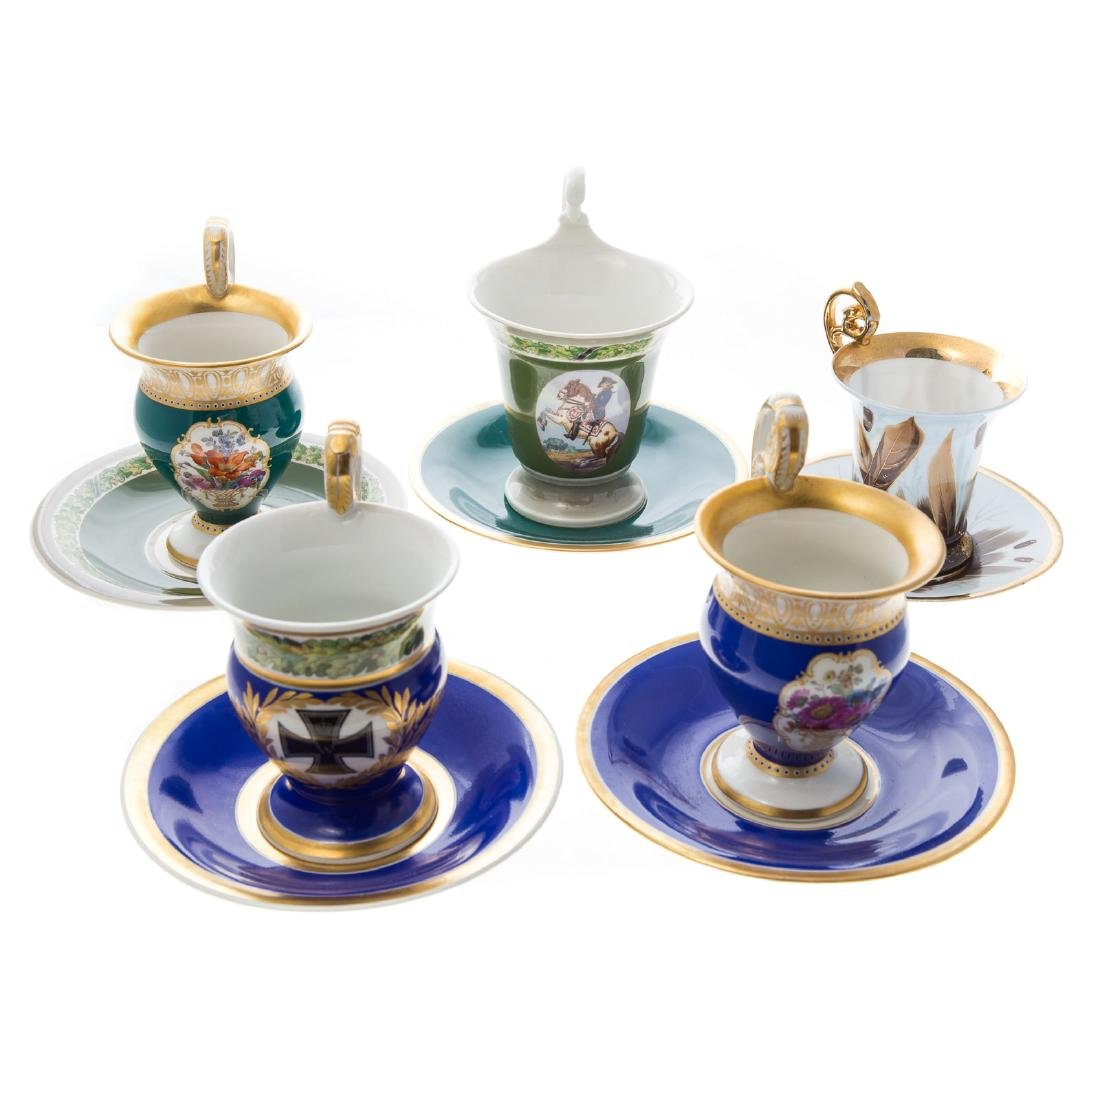 Four KPM porcelain cups and saucers